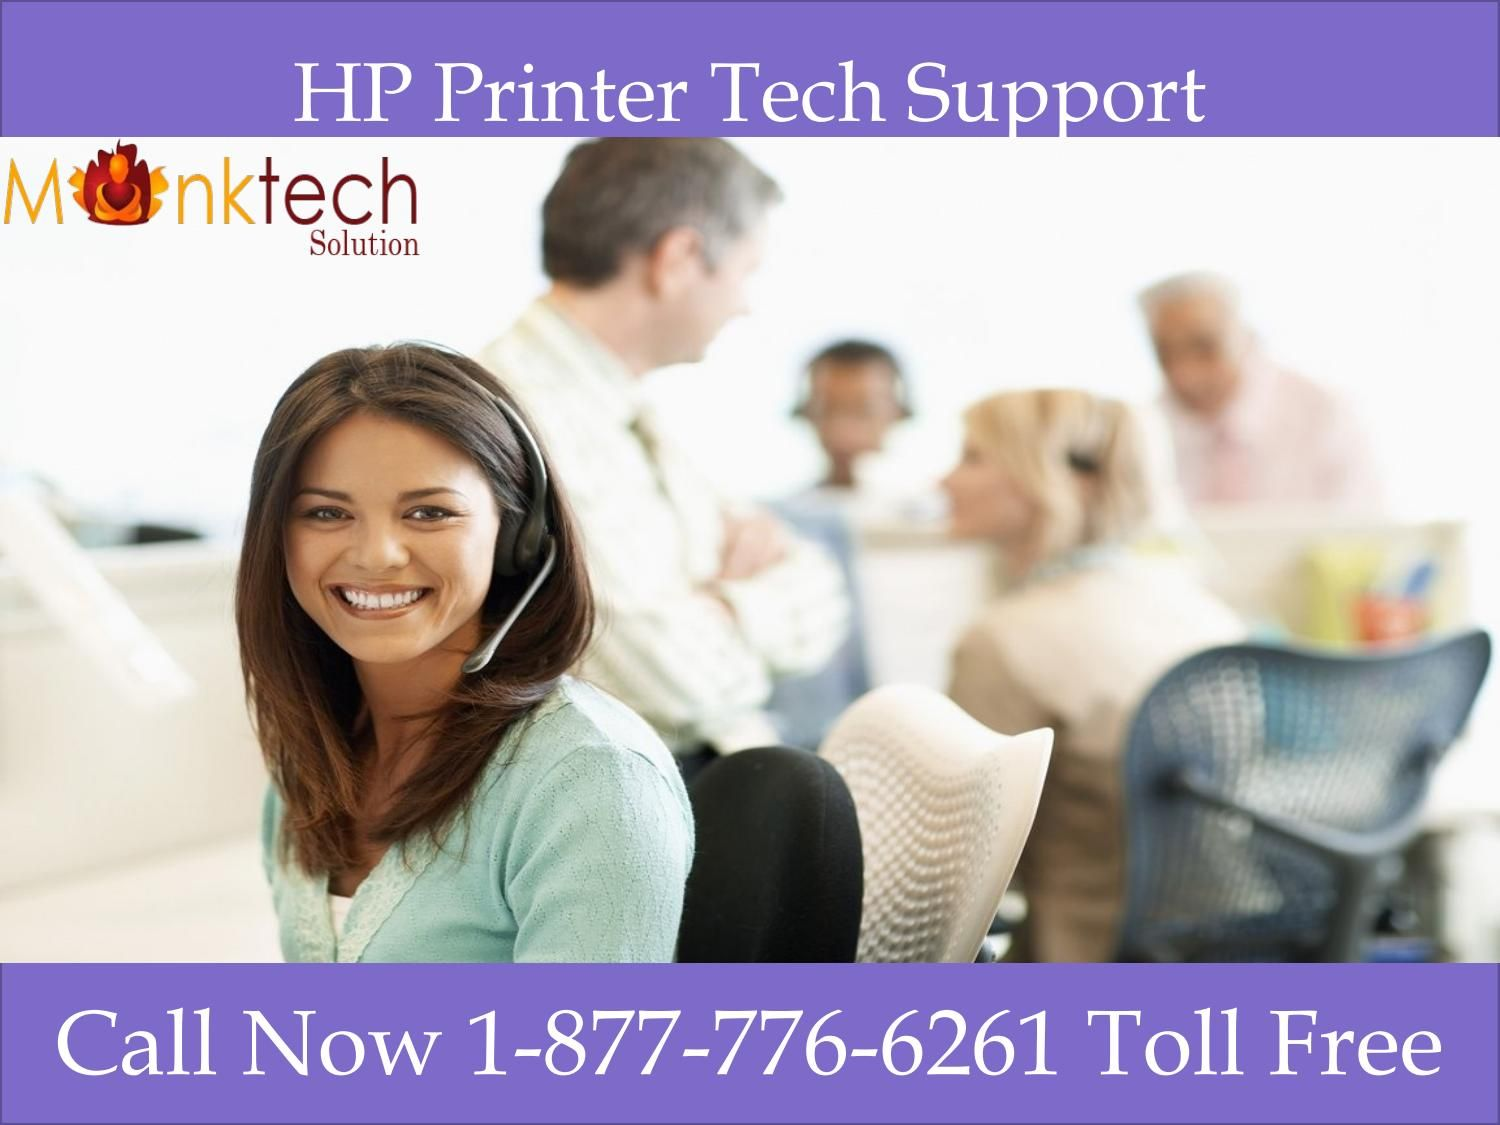 To HP Printer Tech Support Call On 18777766261 toll